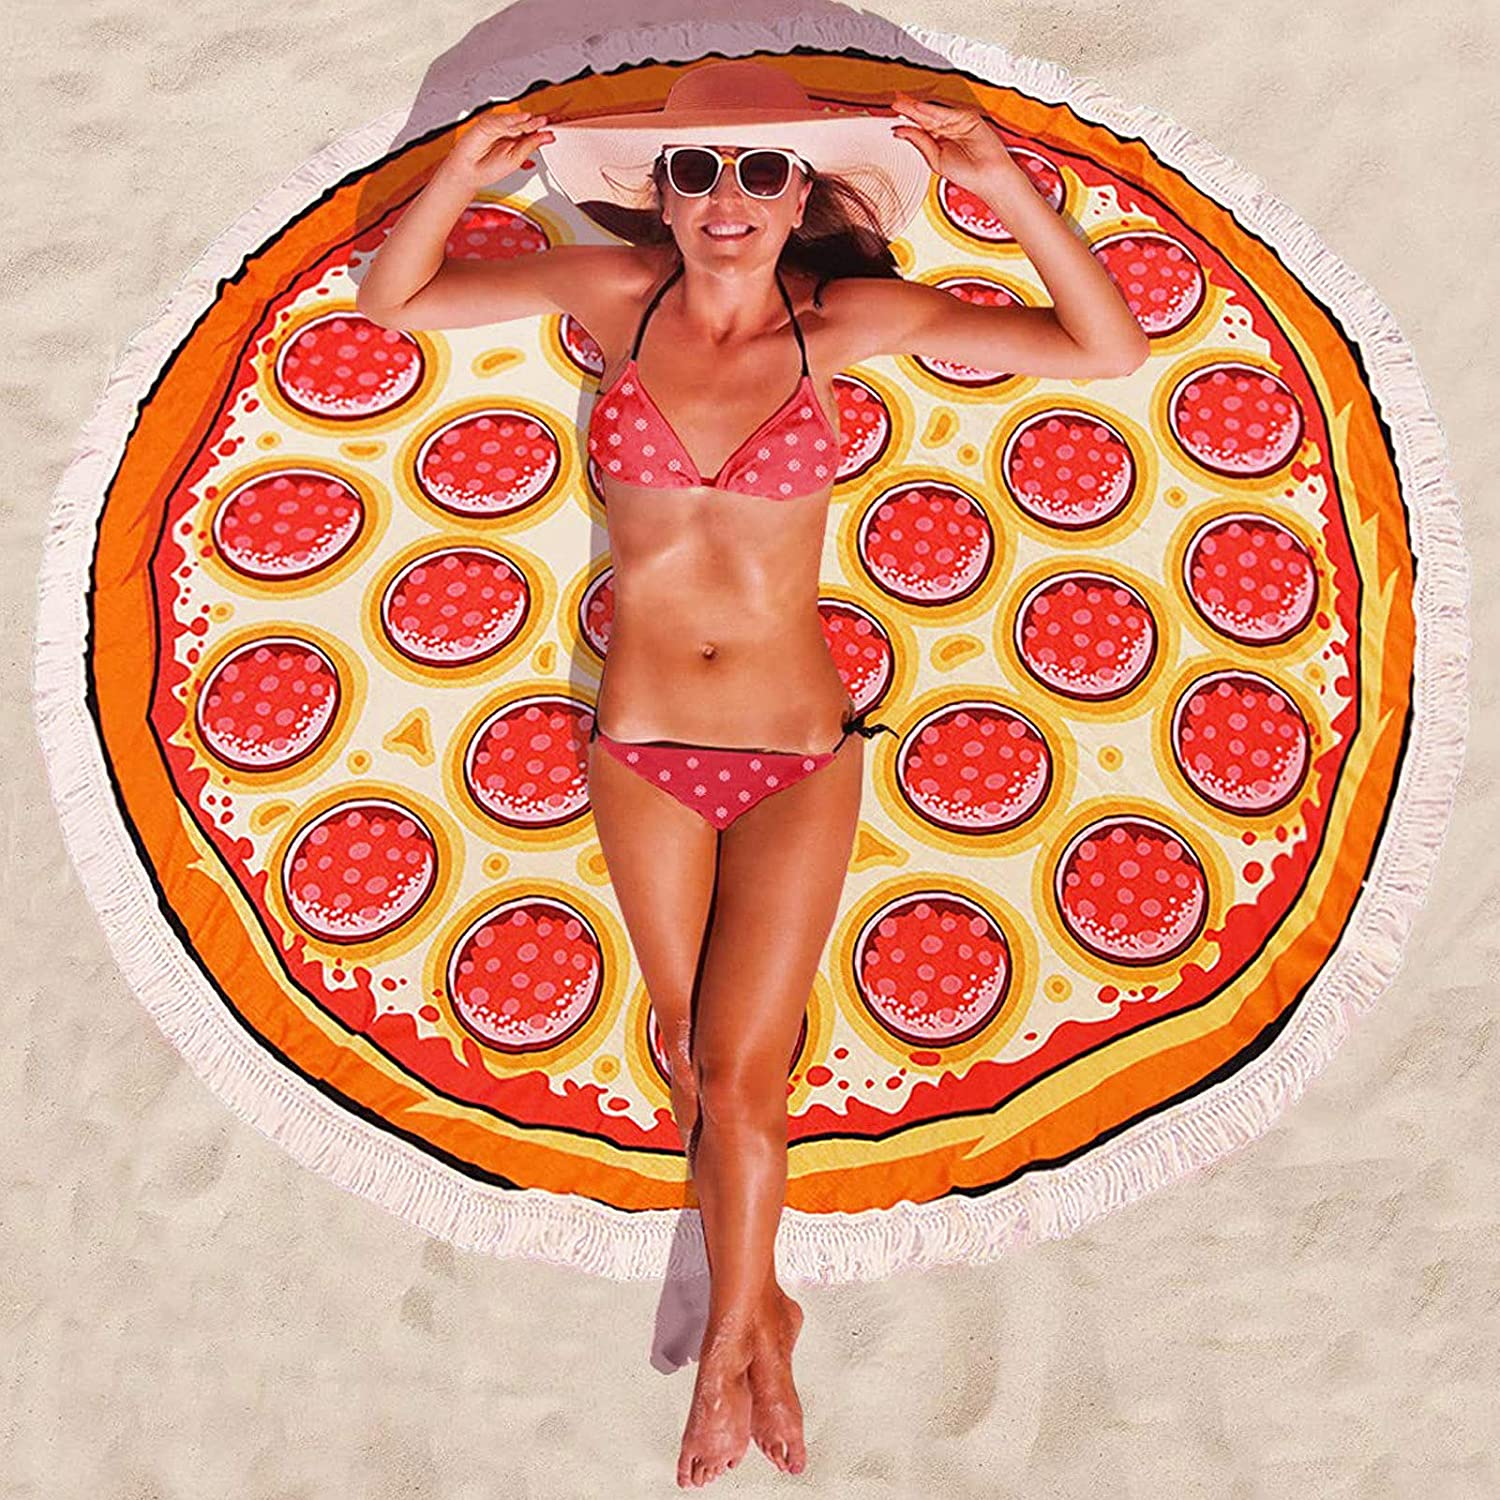 Pizza Round Beach Towel Microfiber Inches Ultra-Cheap Deals Oversized OFFicial mail order Blanket W 59